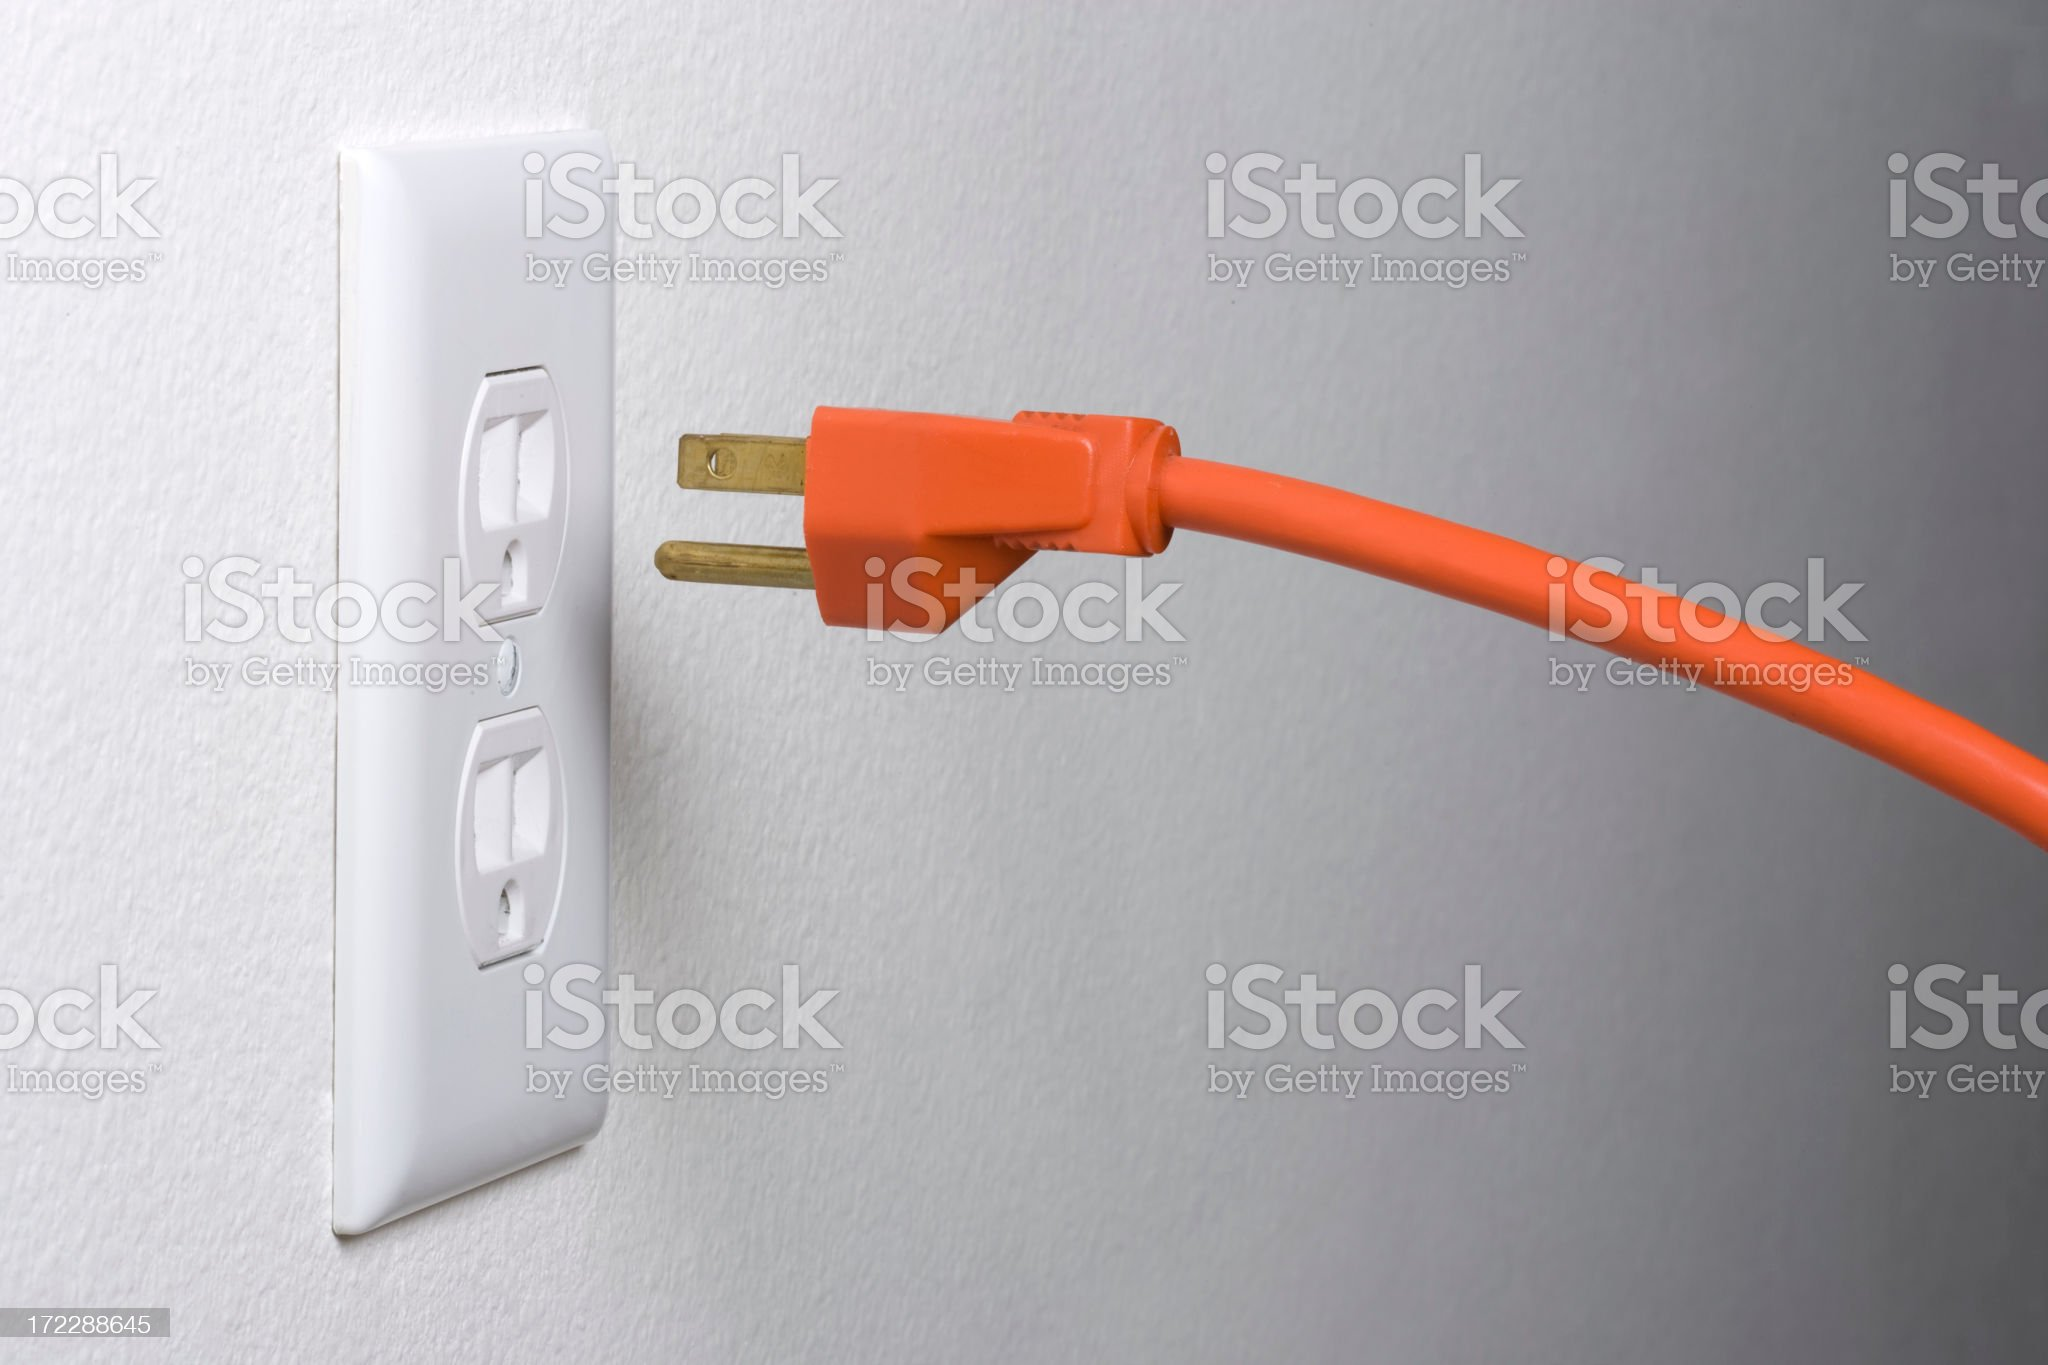 Unplug It royalty-free stock photo